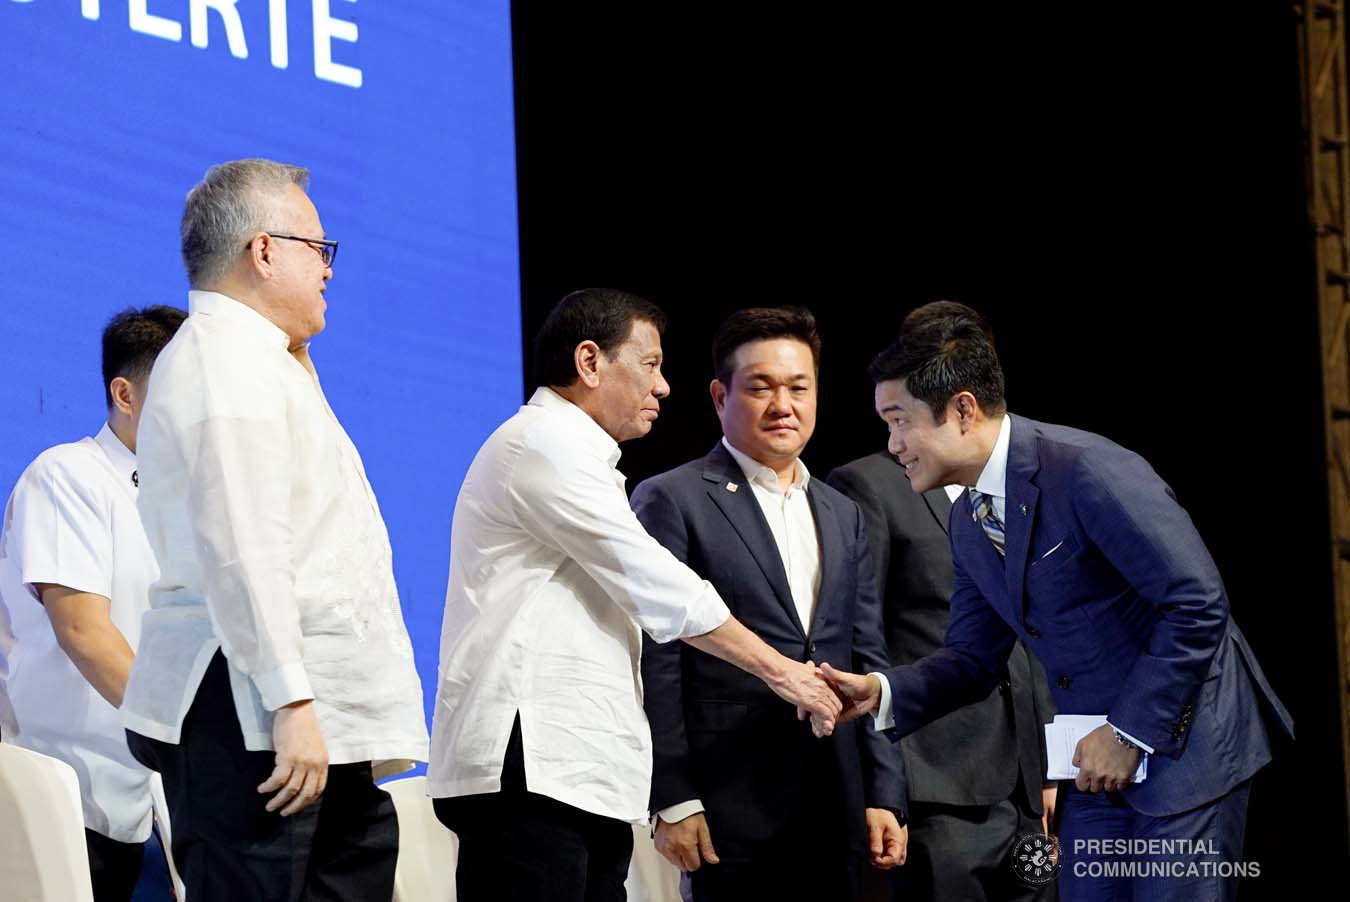 President Rodrigo Roa Duterte greets Golden Topper Group Inc. Philippines CEO Joseph Lombos during the Golden Topper Corporate Launch at the Aseana Business Park in Parañaque City on September 25, 2019. KING RODRIGUEZ/PRESIDENTIAL PHOTO